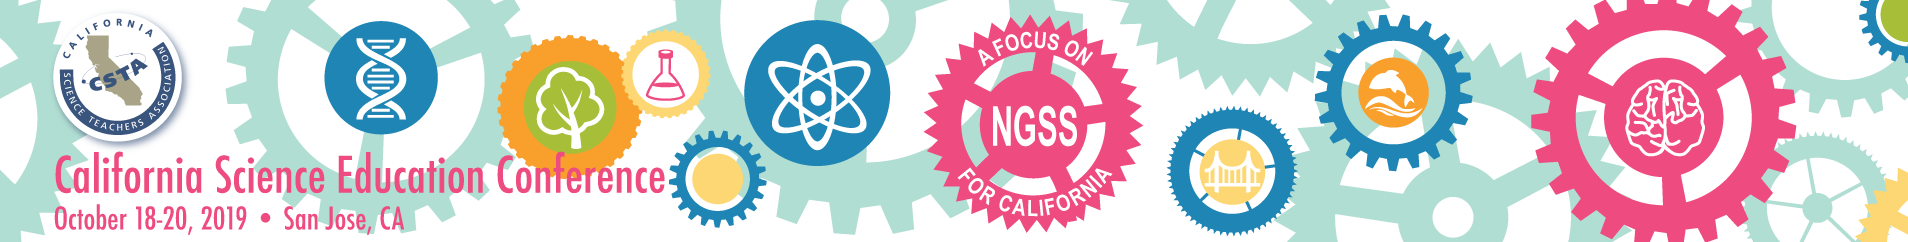 California Science Education Conference